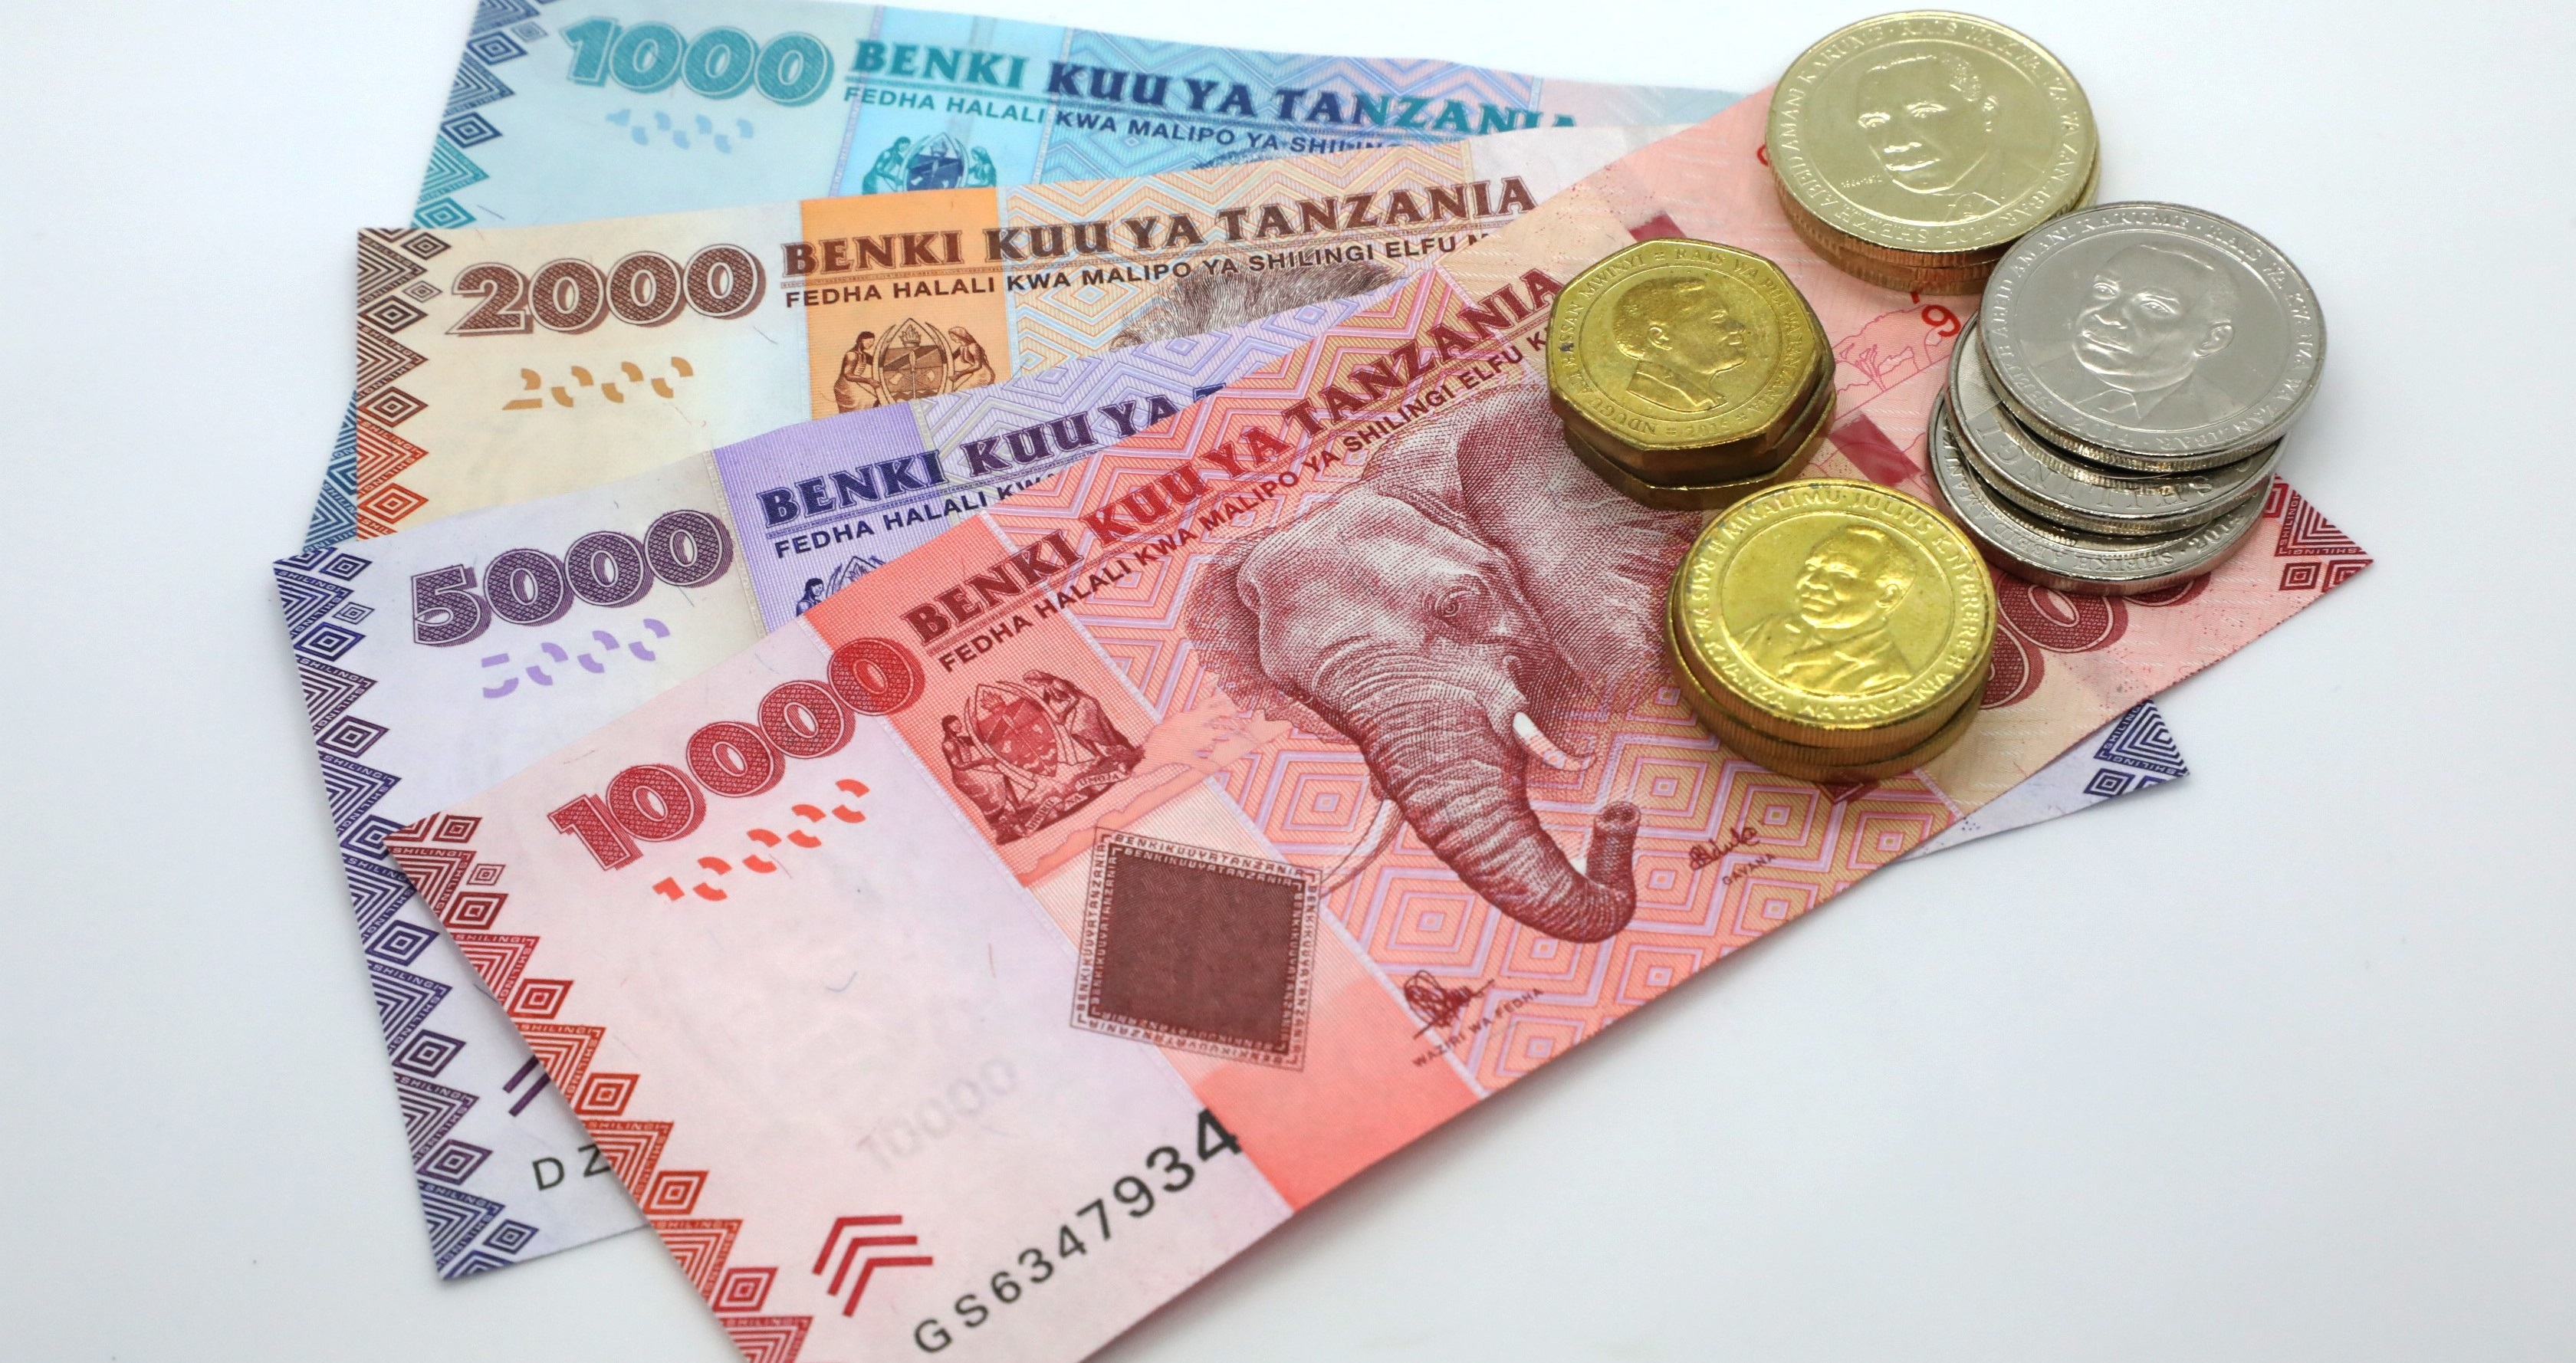 Broad money supply  rises to 30tri/- in March